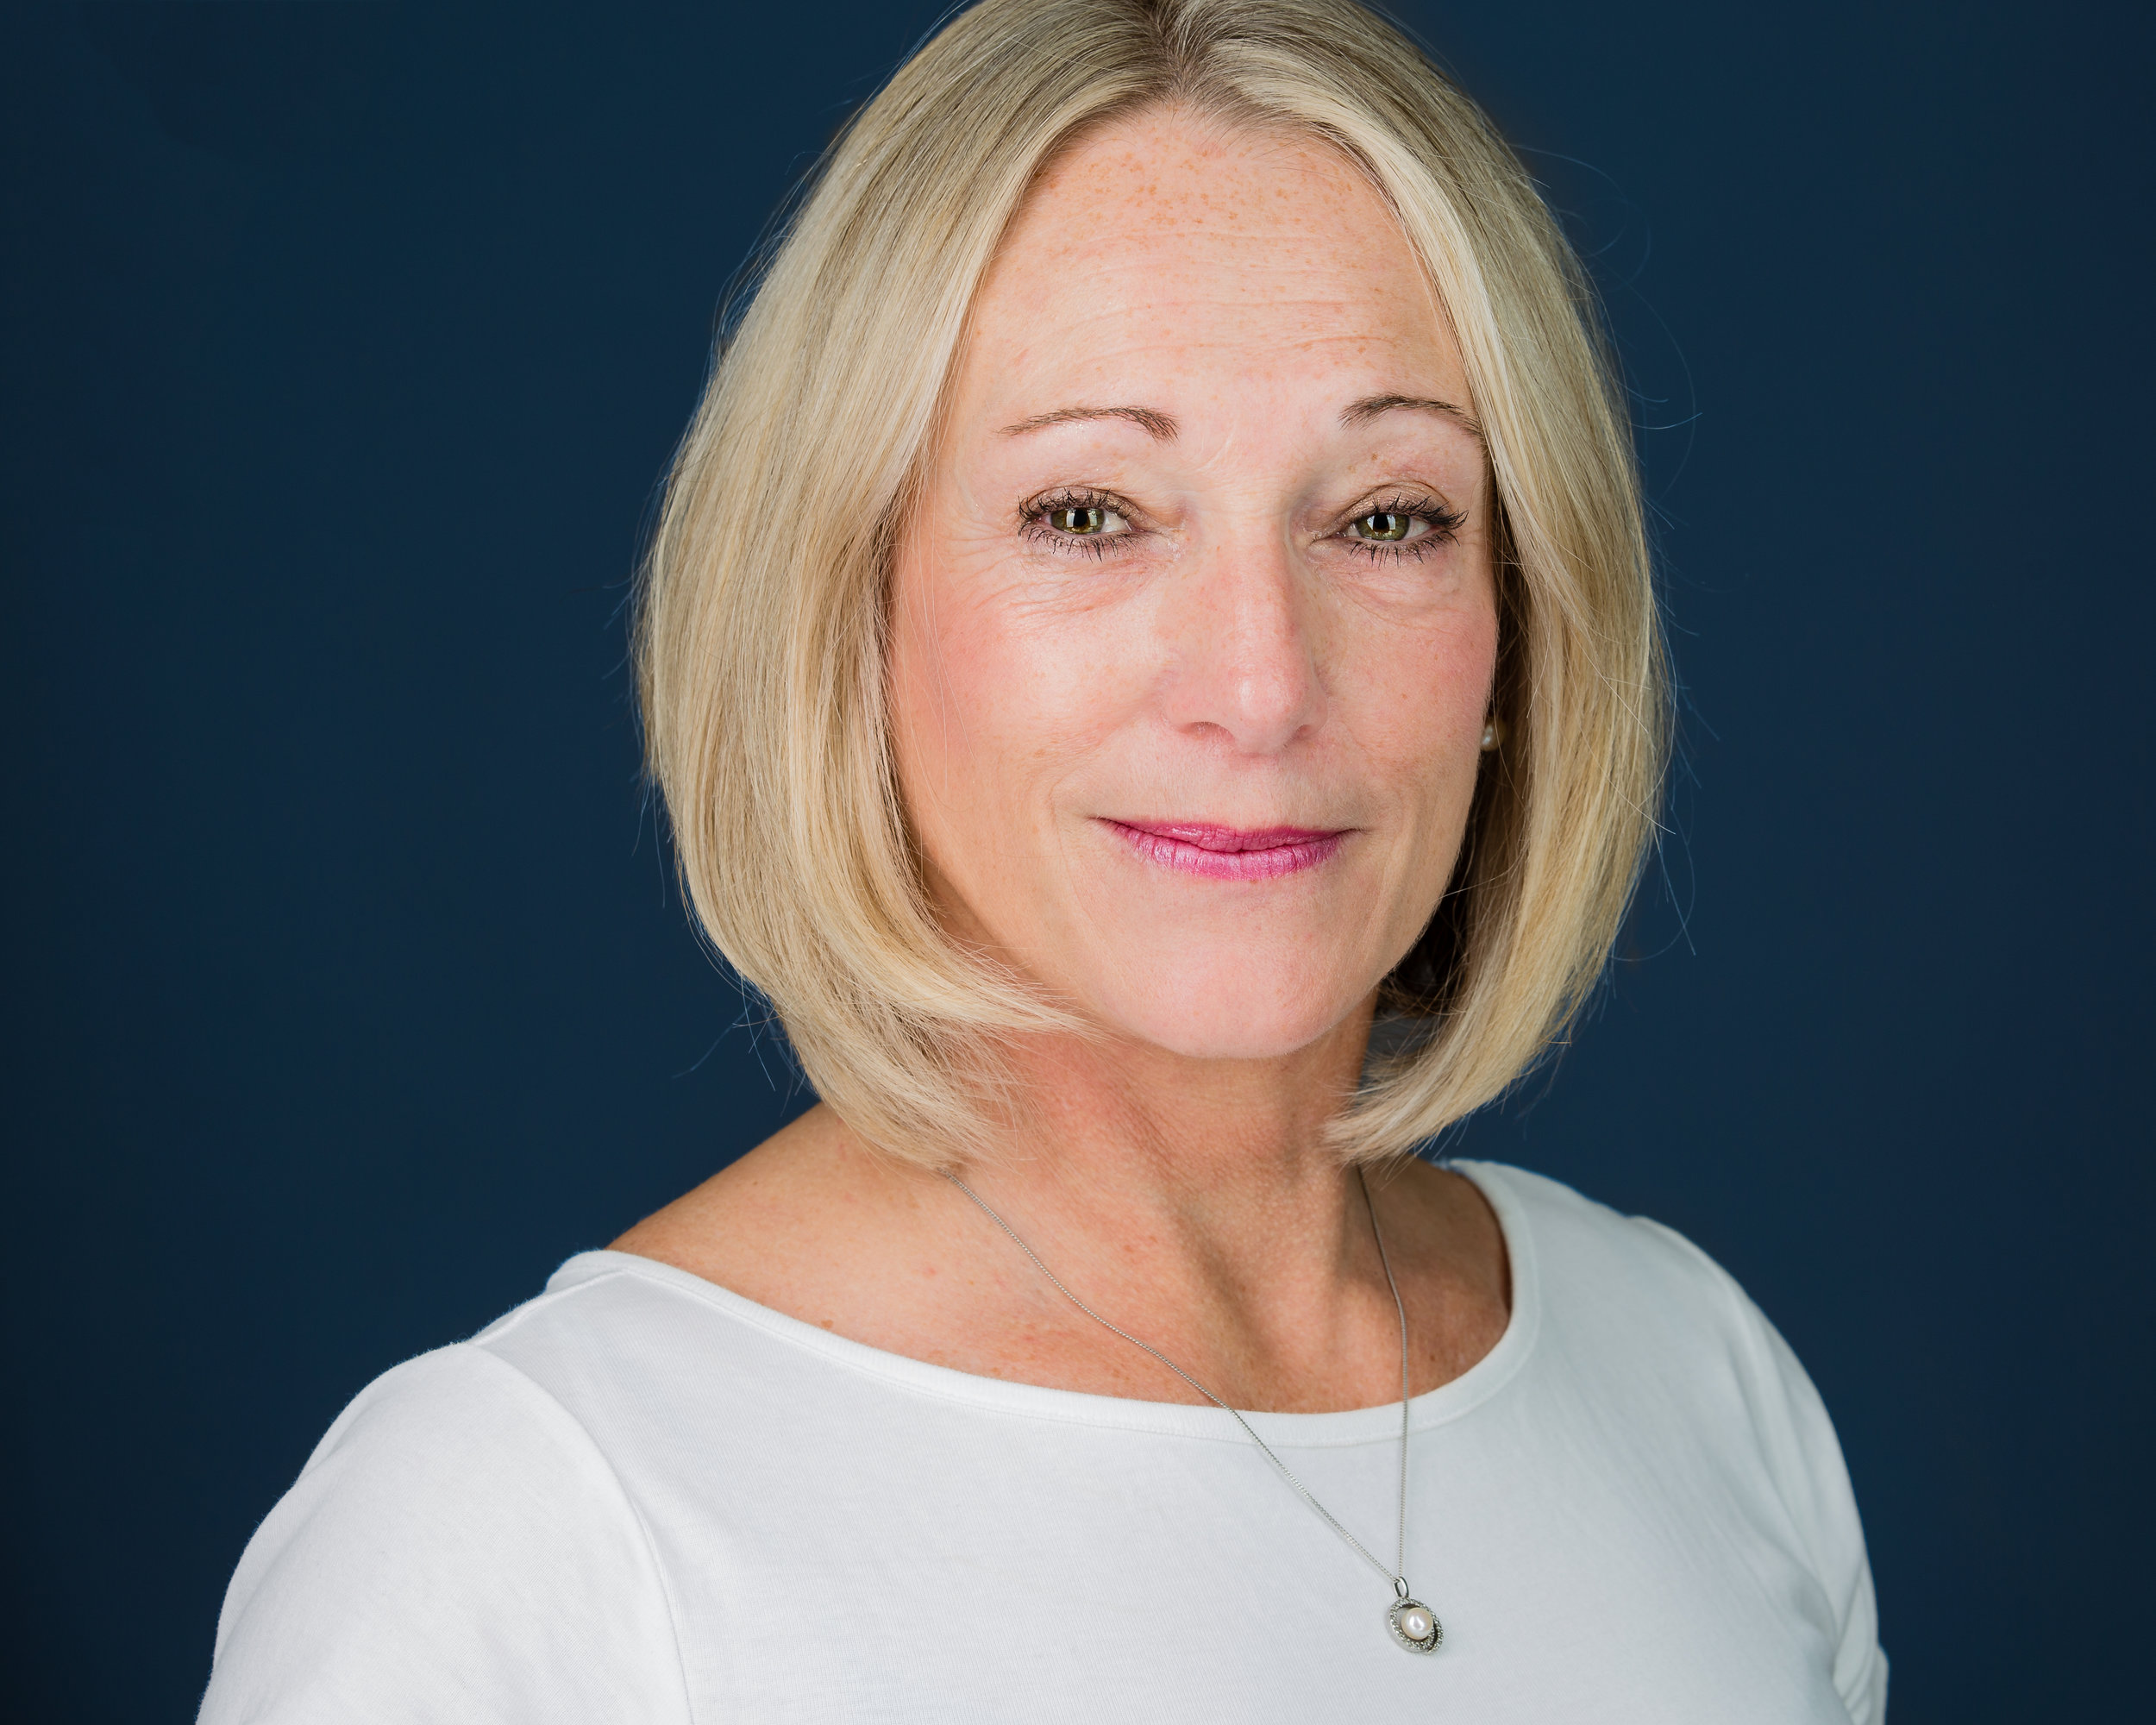 D Coventry, Corporate Headshot captured at ELM Photo Studio, Portsmouth